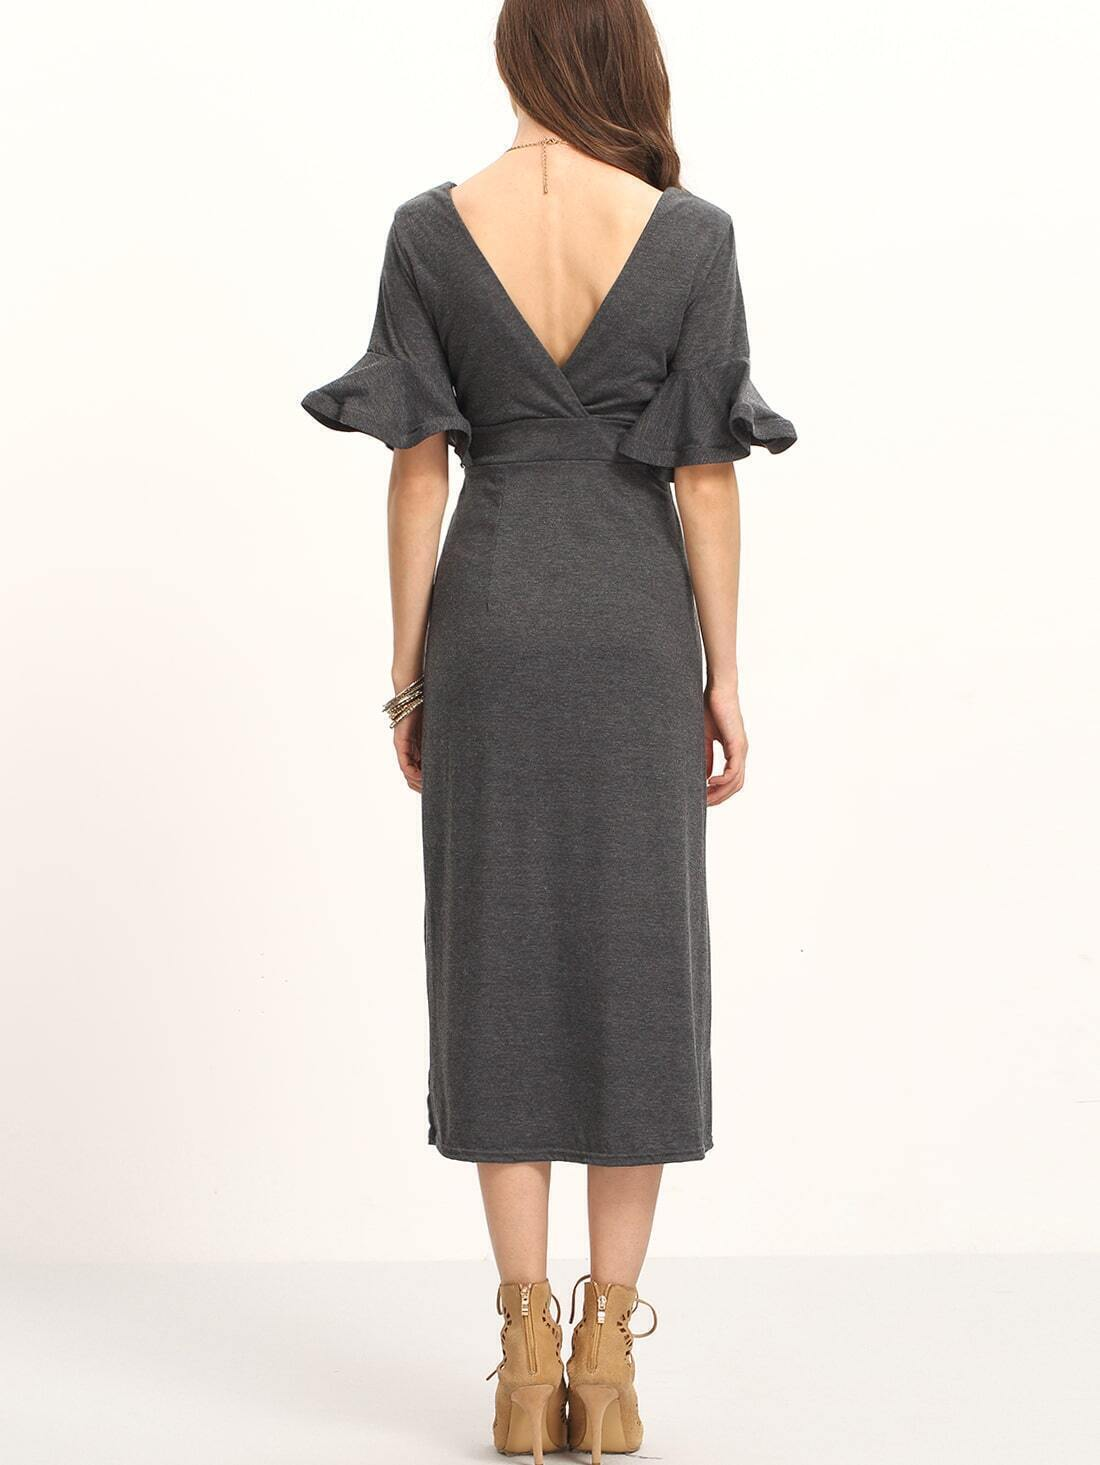 robe longue col v manche evasee gris french romwe With robe évasée manche longue